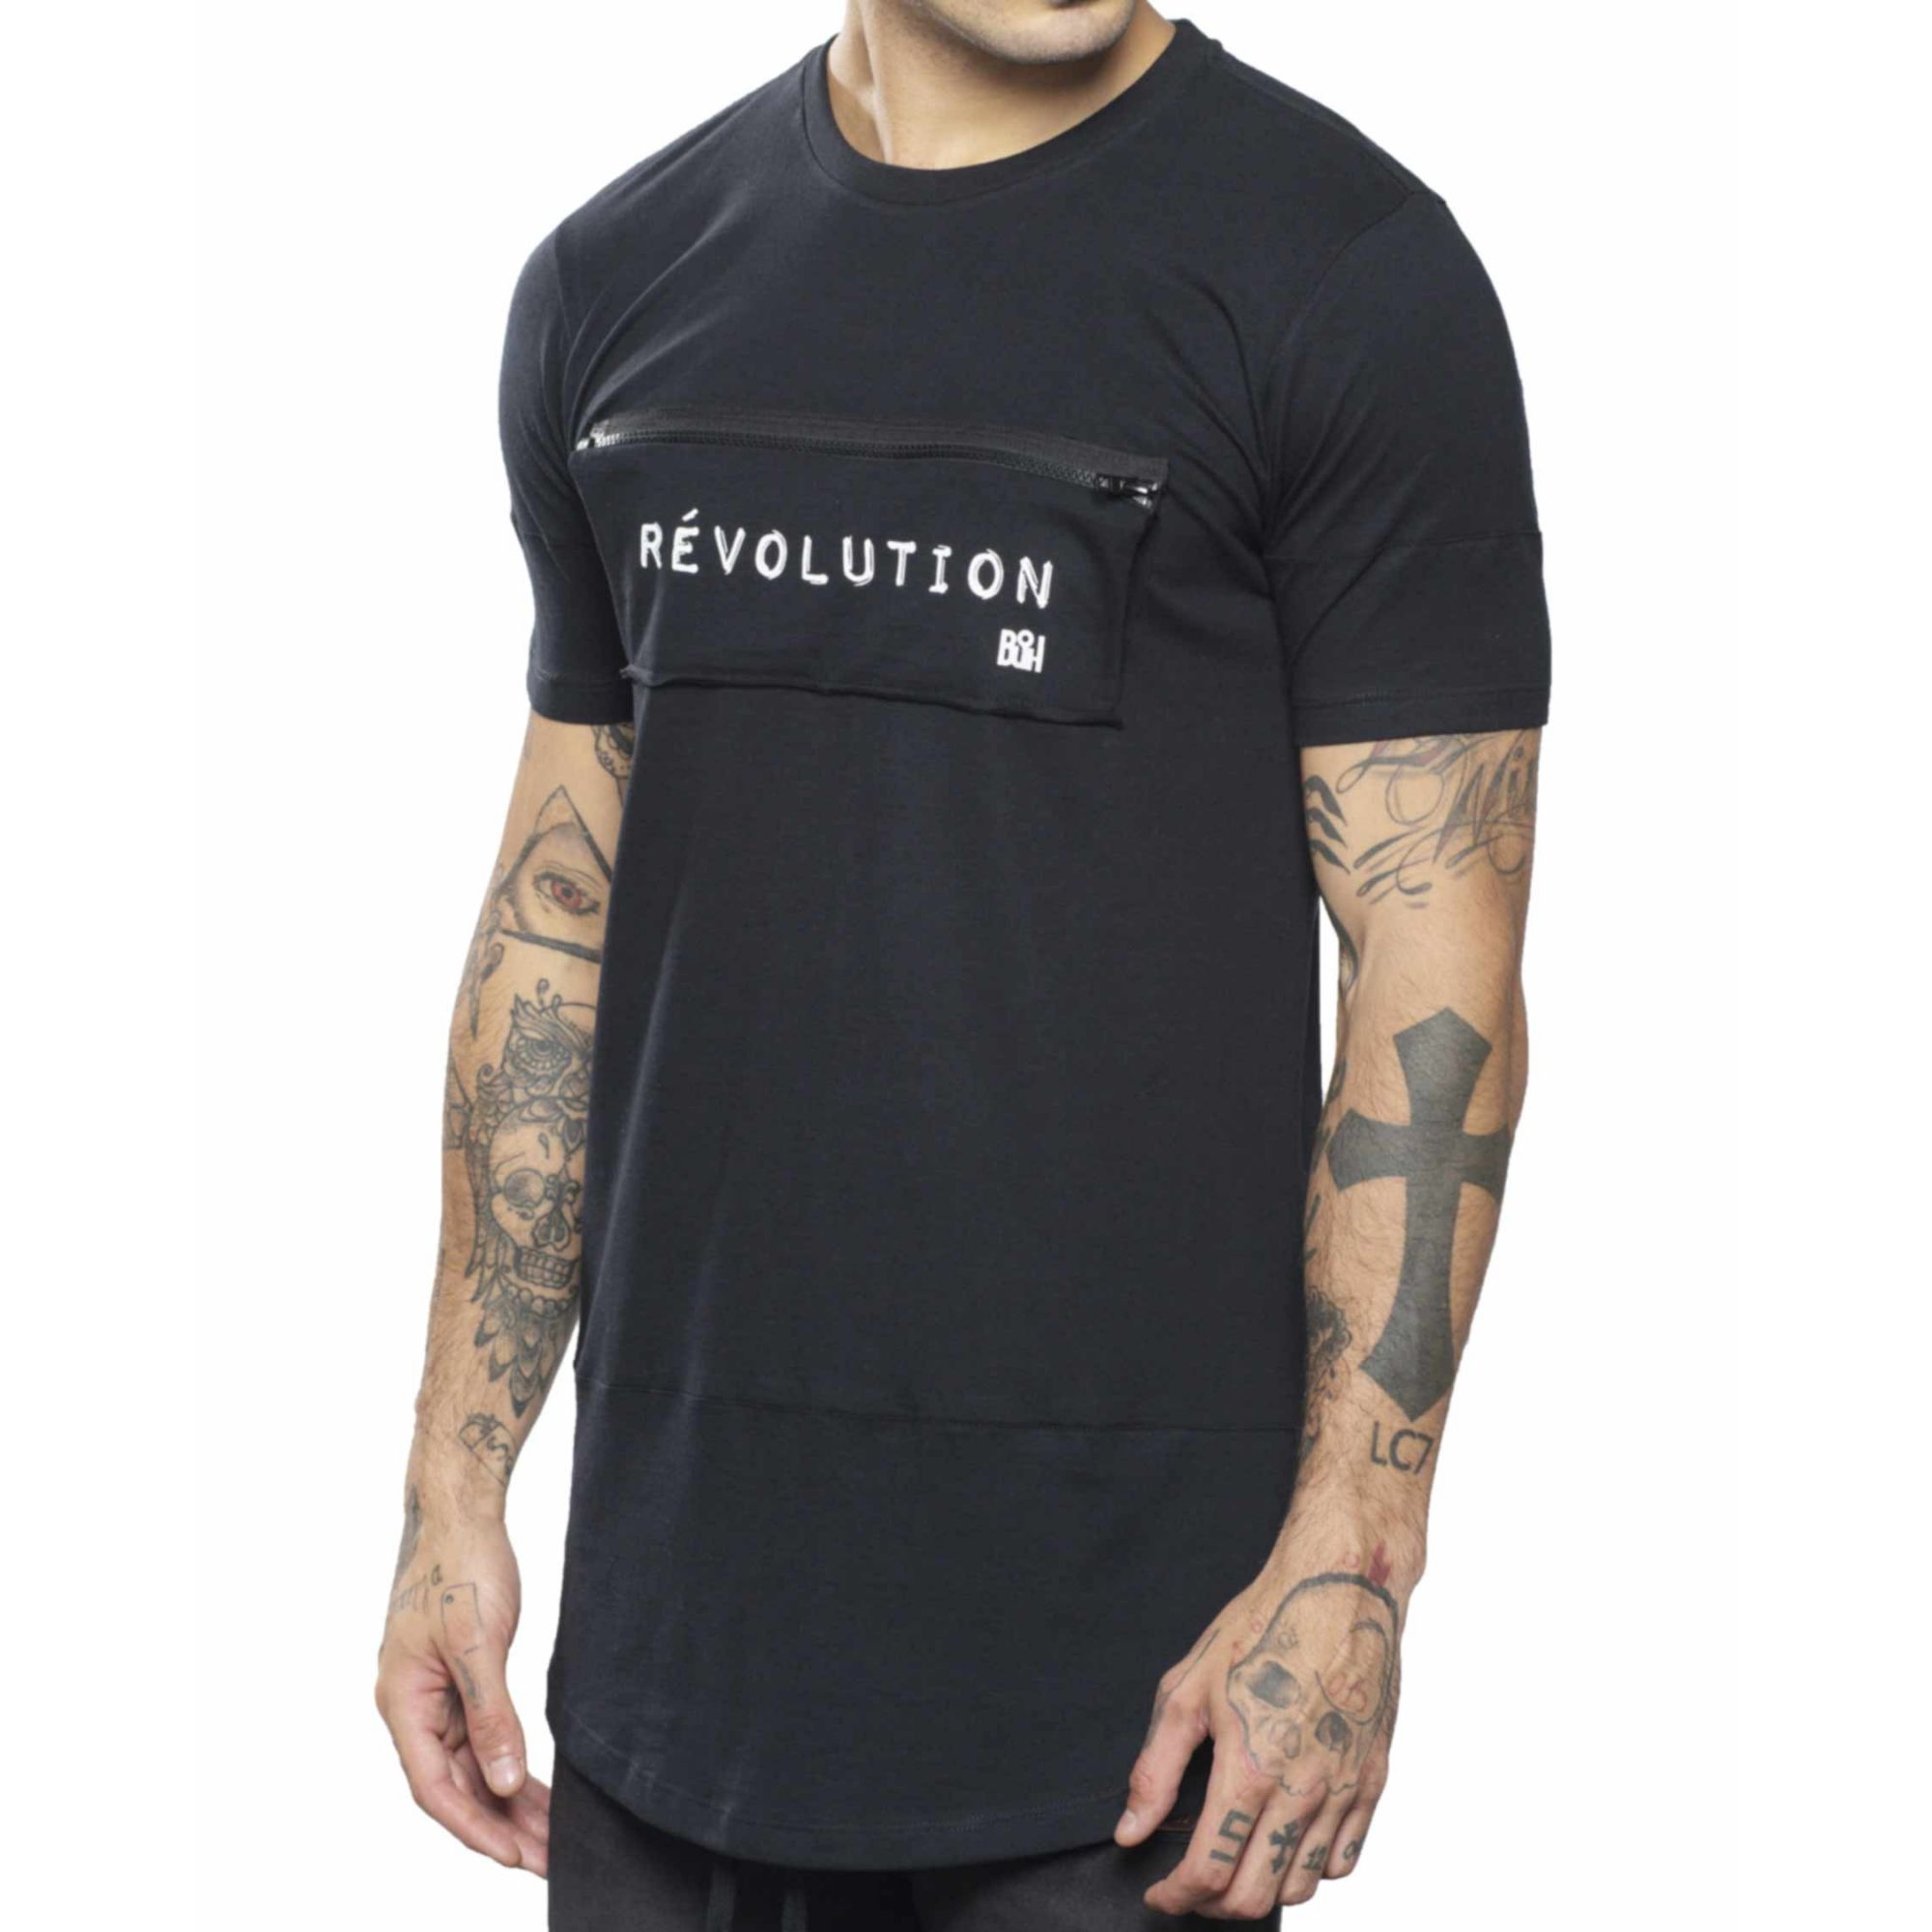 Camiseta Buh Révolution Zíper Black